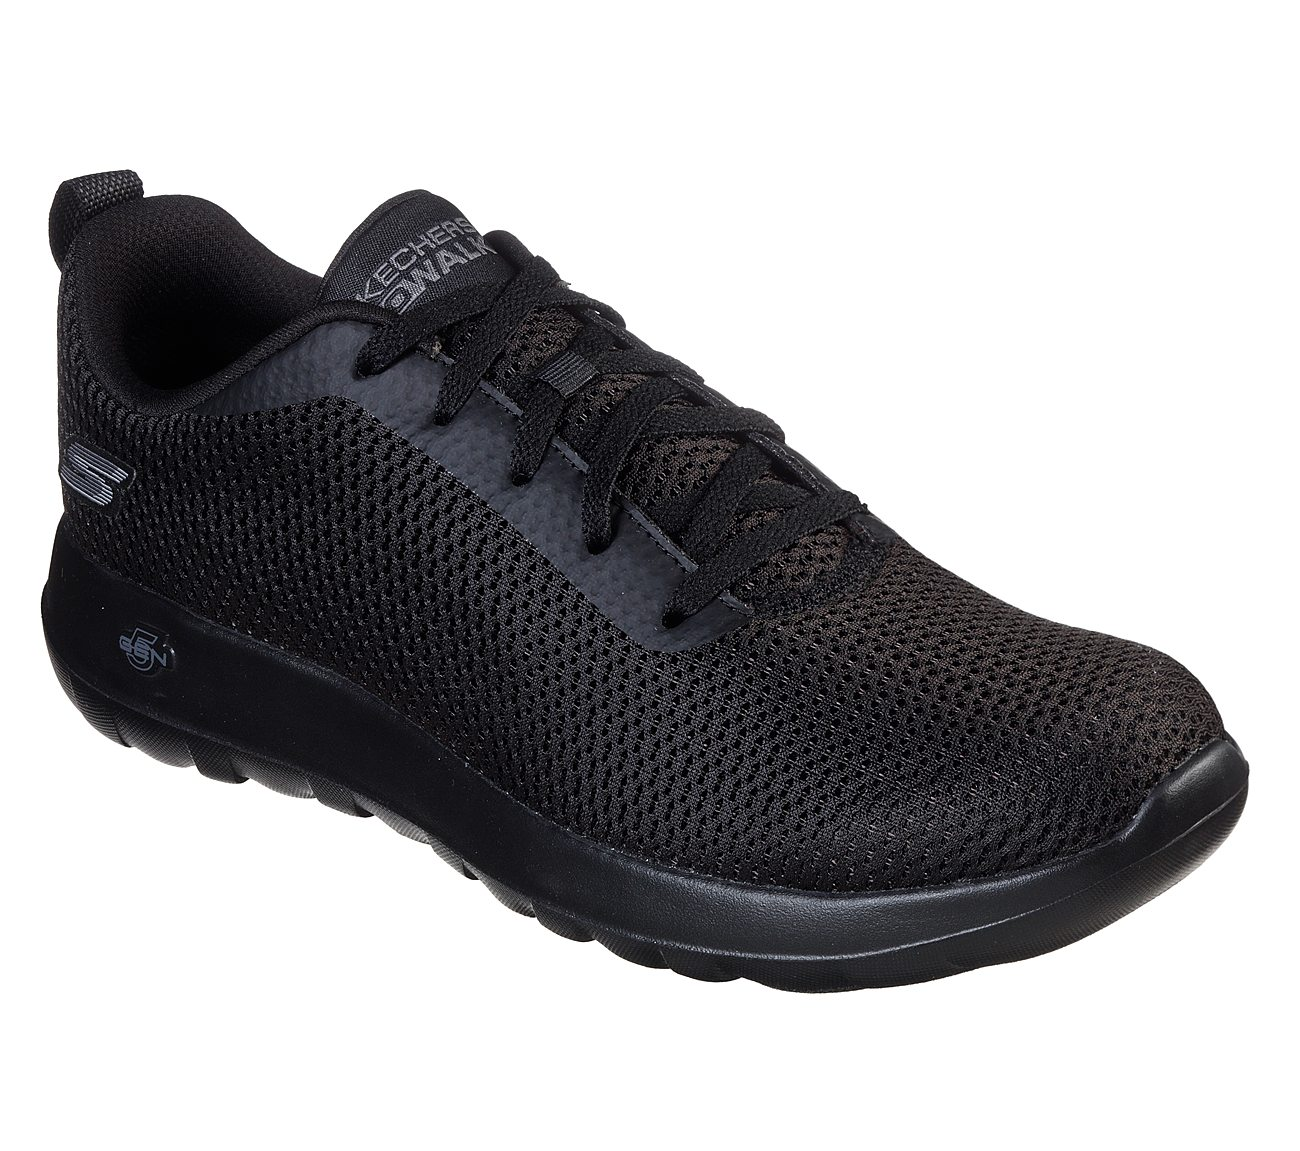 skechers mens walking shoes india